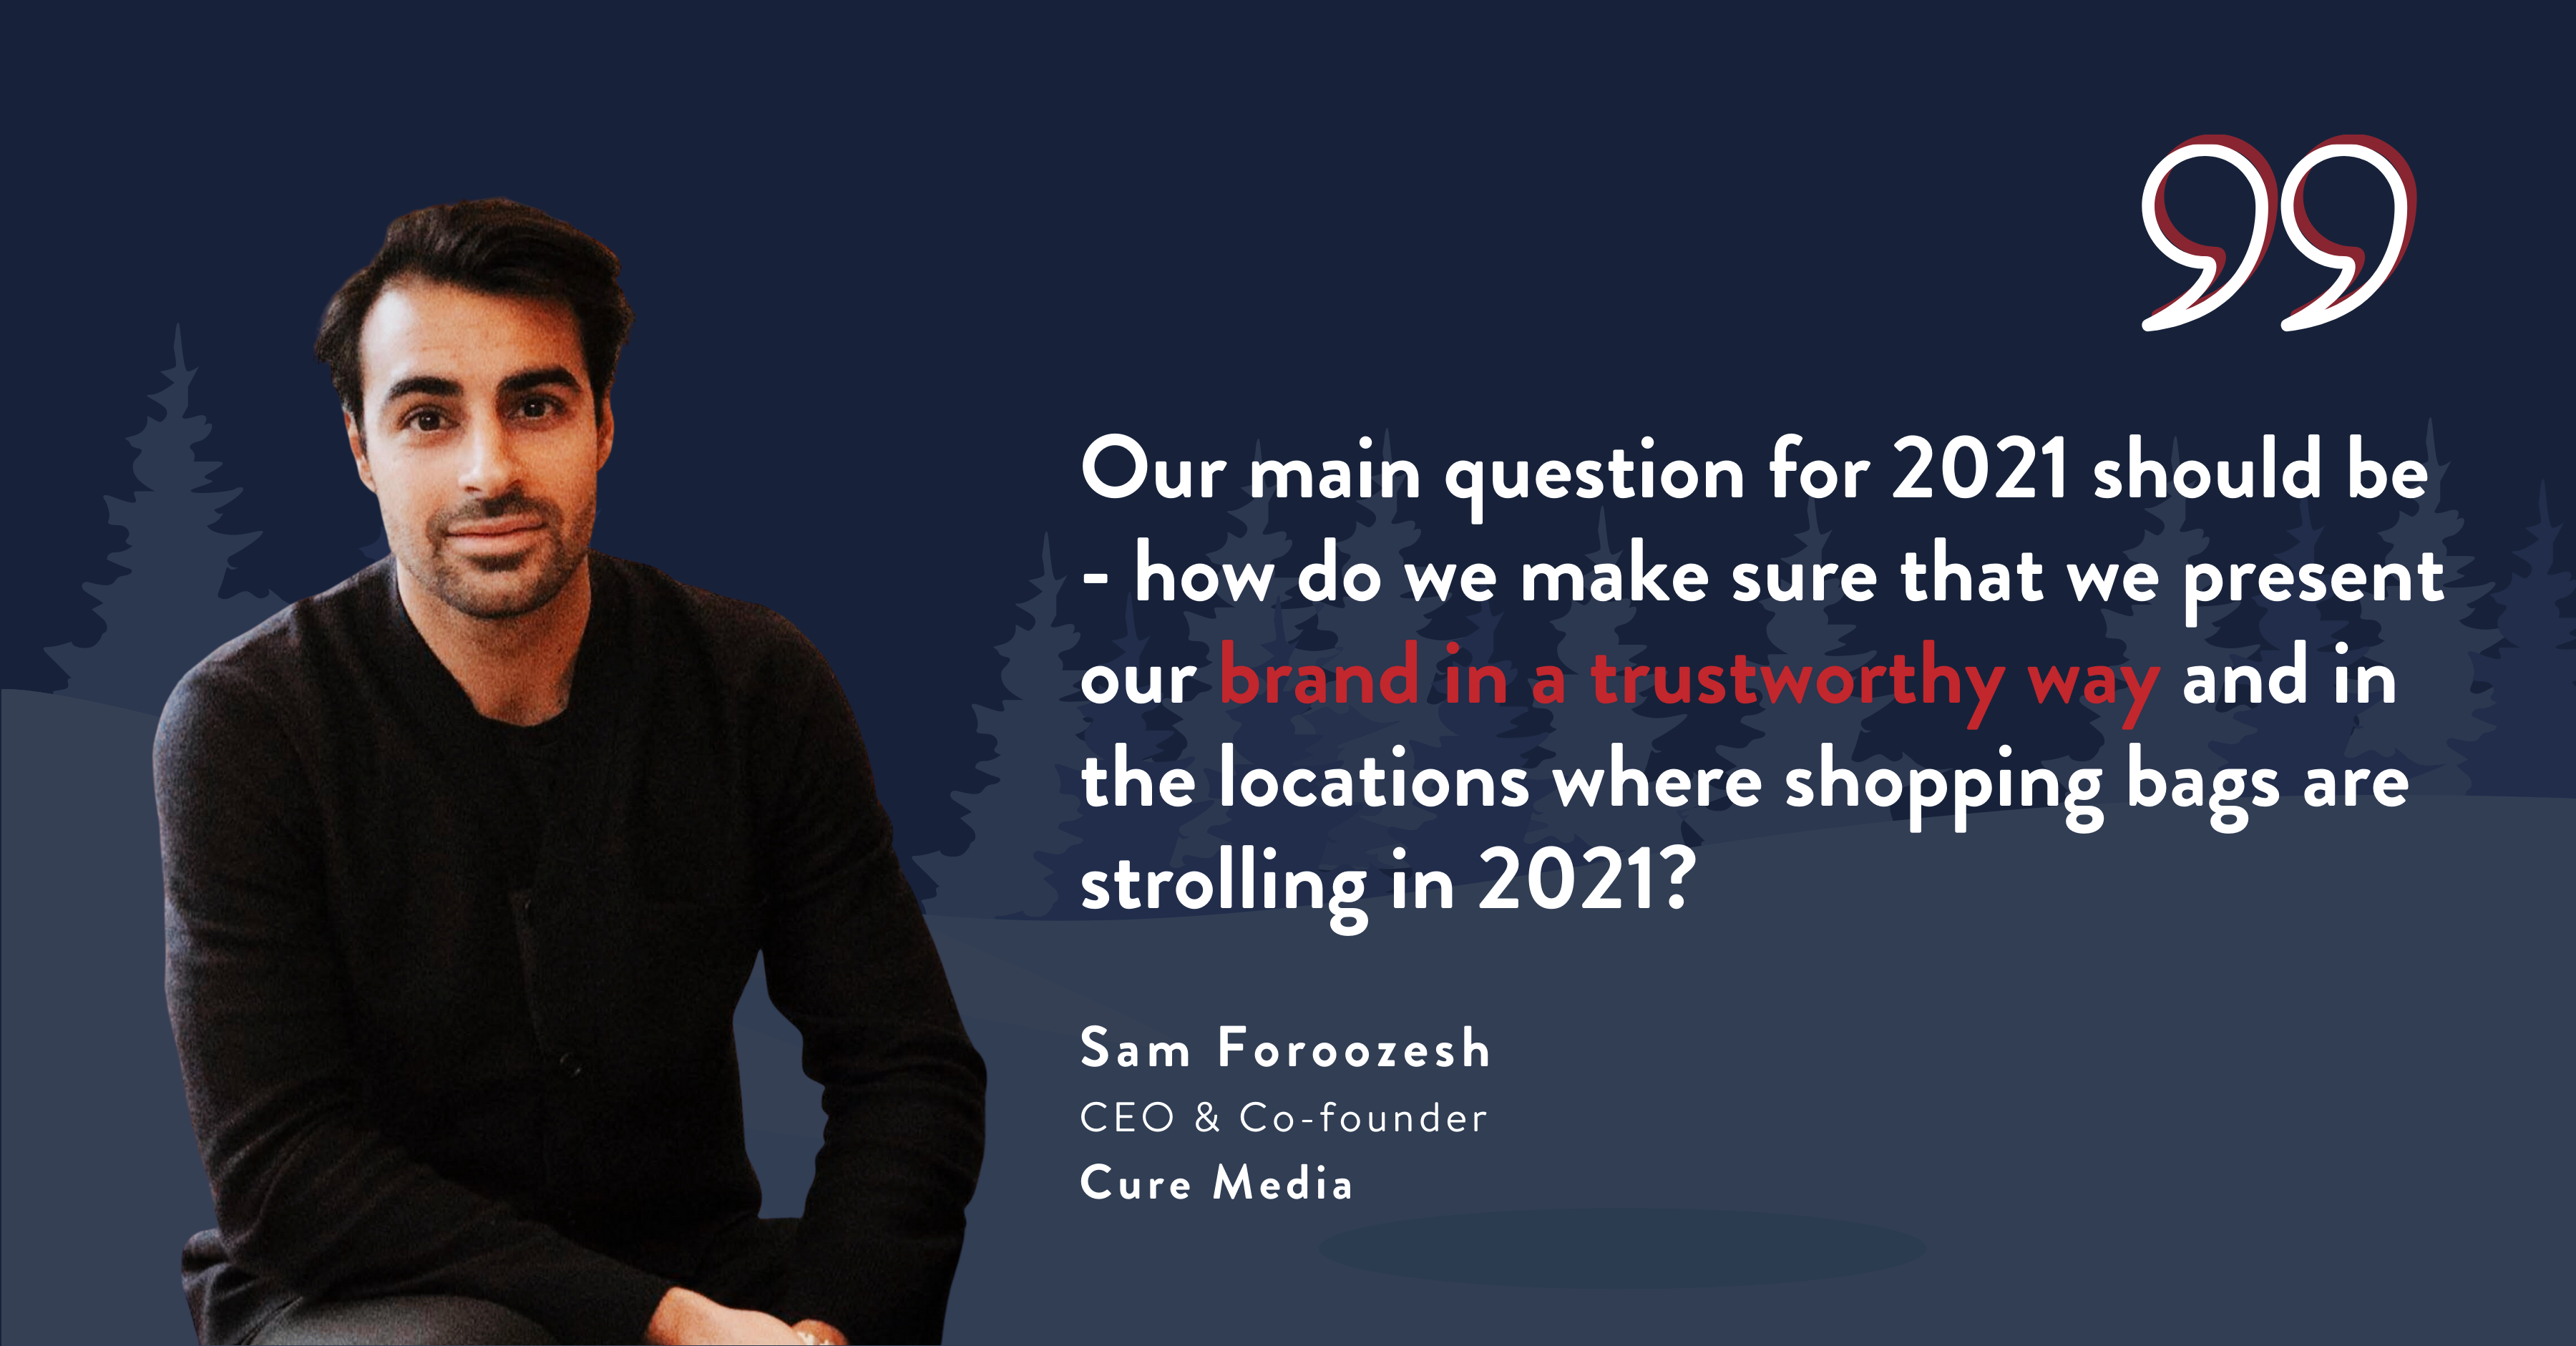 sam-foroozesh-cure-media